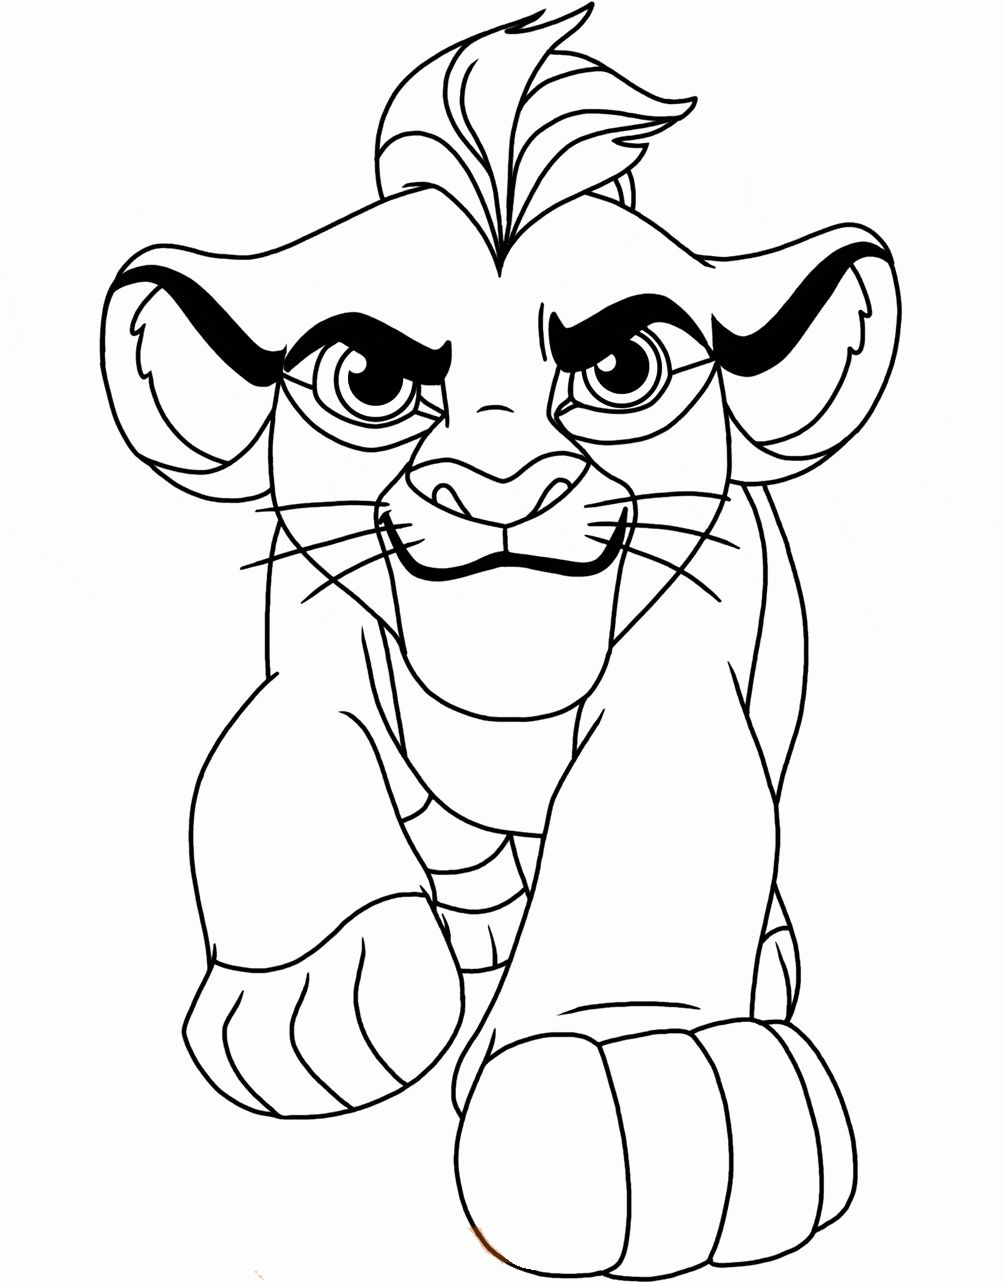 Lion Guard Coloring Book Best Of Lion Guard Kion And Kiara Coloring Pages Coloring Pages In 2020 Horse Coloring Pages Coloring Books Disney Coloring Pages